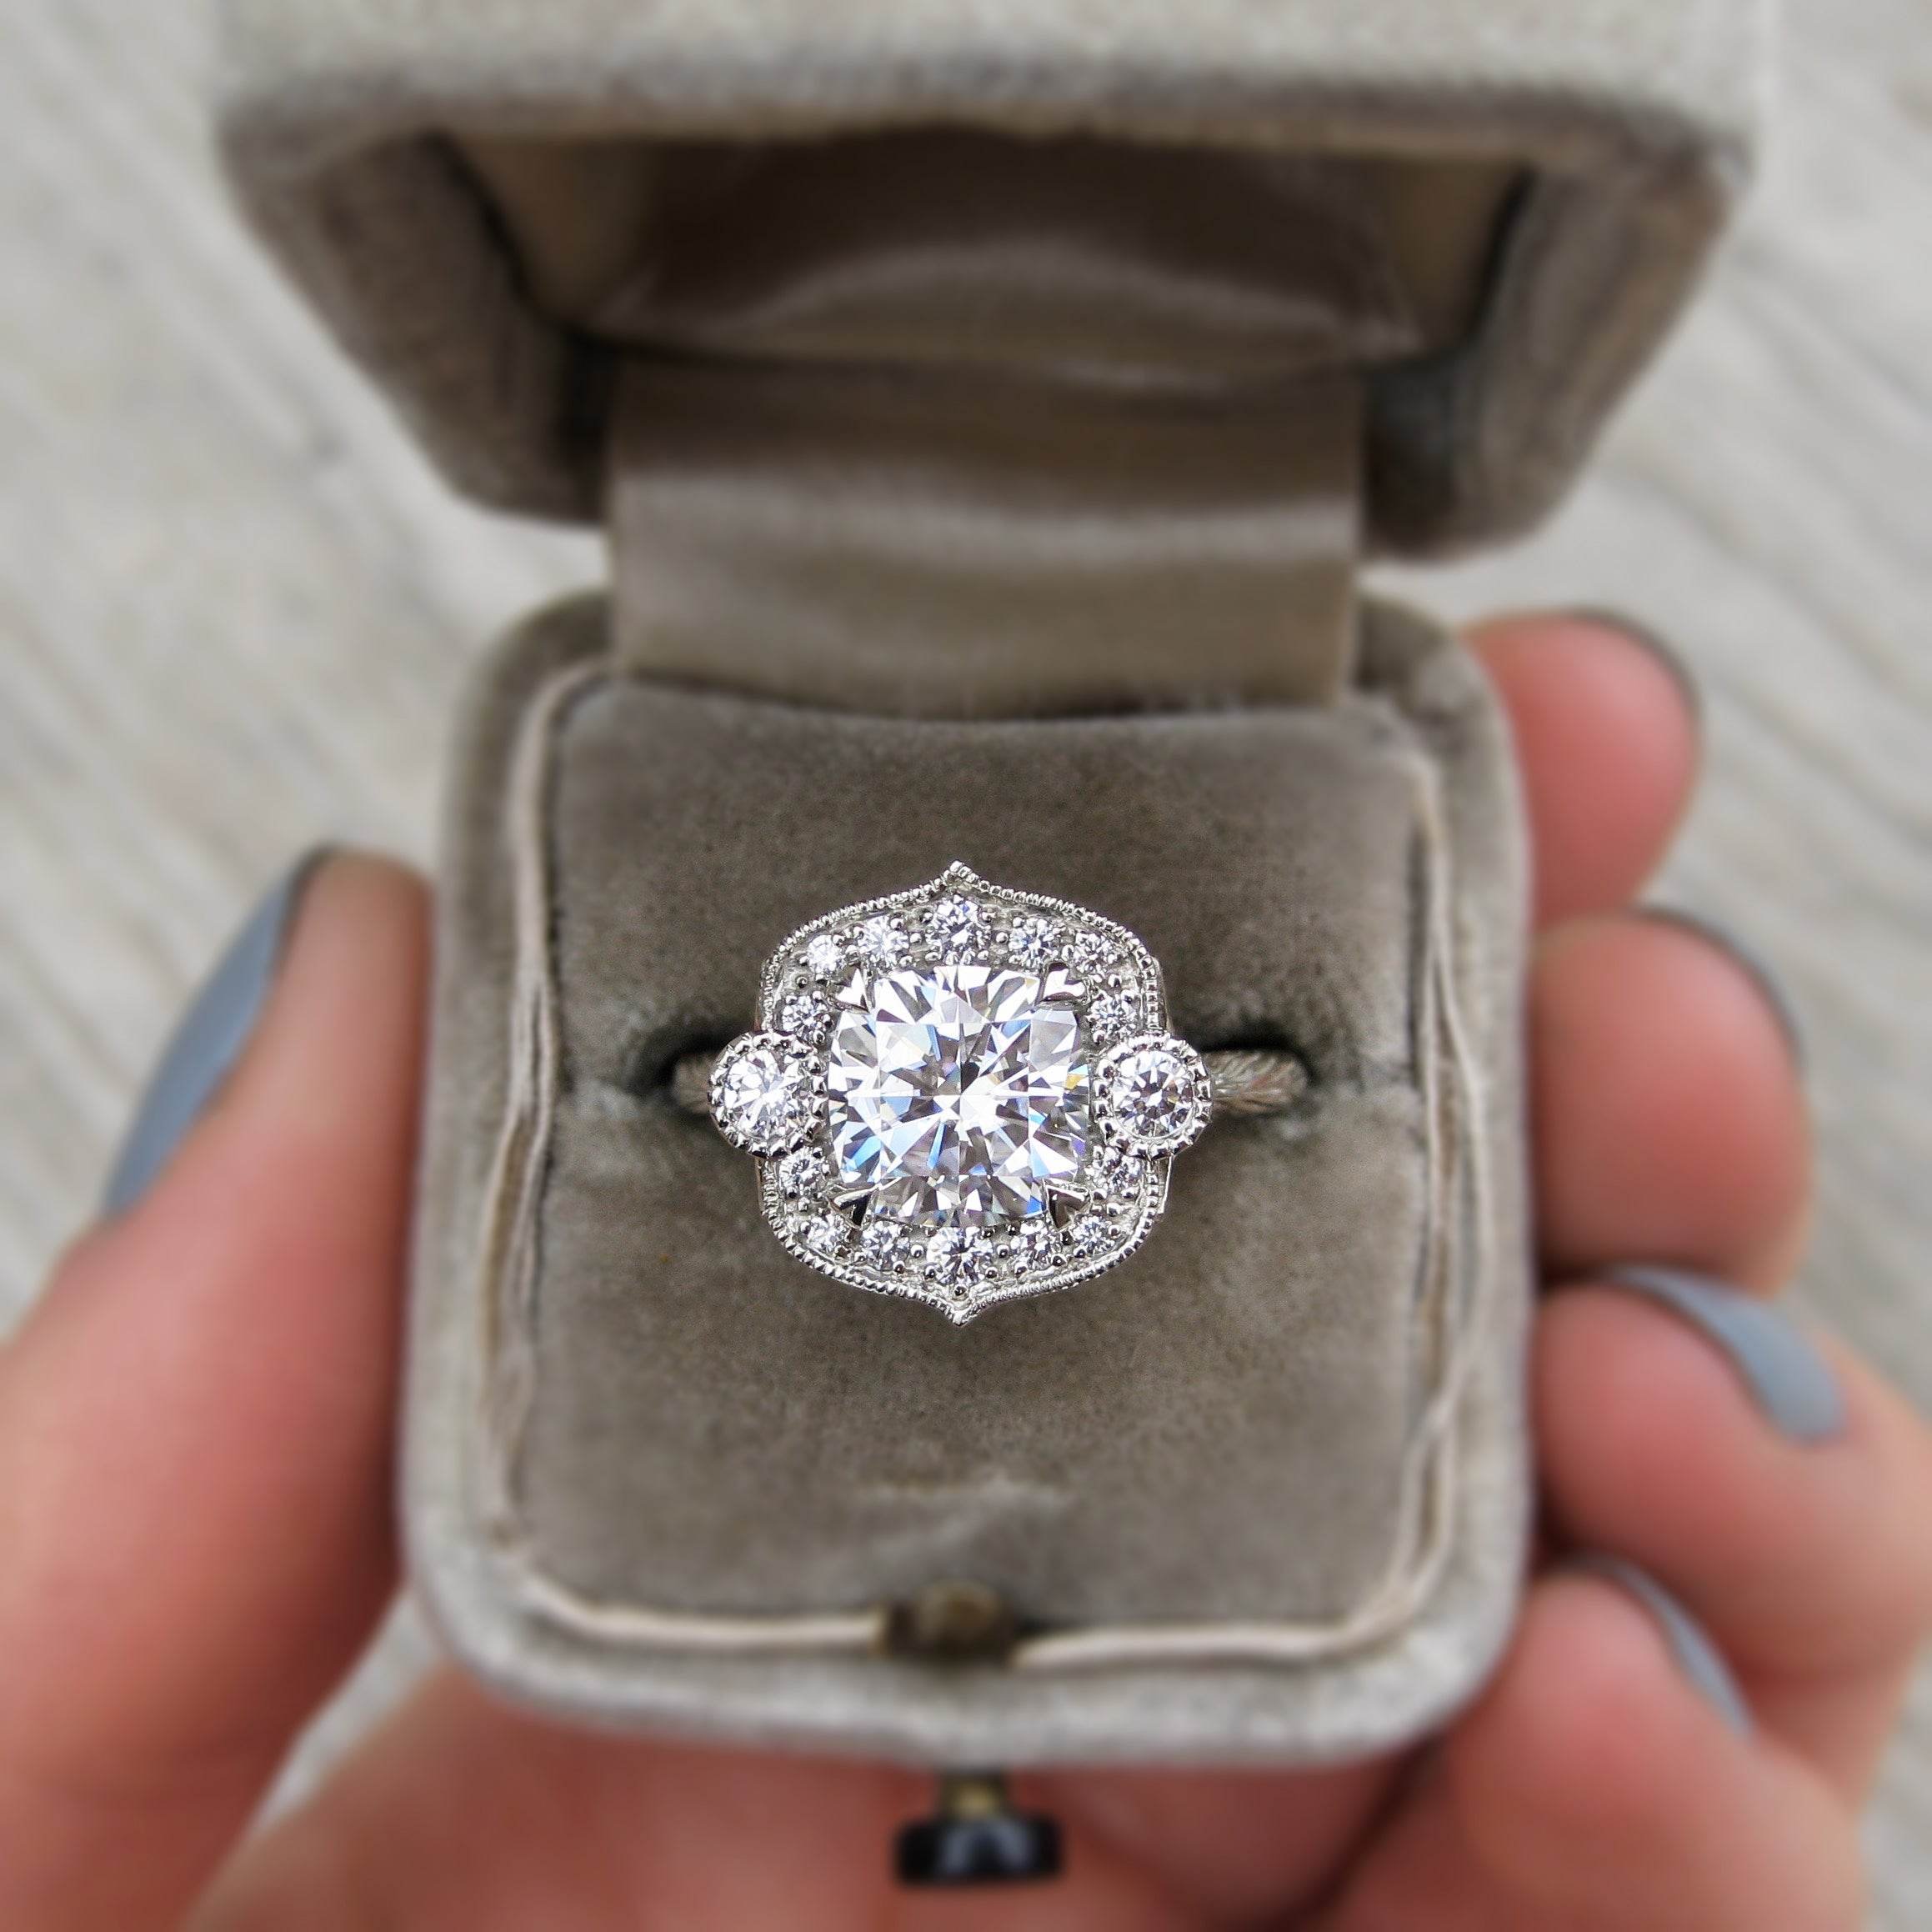 a available the platinum are jack diamonds white pin diamond now brilliant round f weighing ring g kelege total clarity at fg rose cut color gold containing carats engagement and of